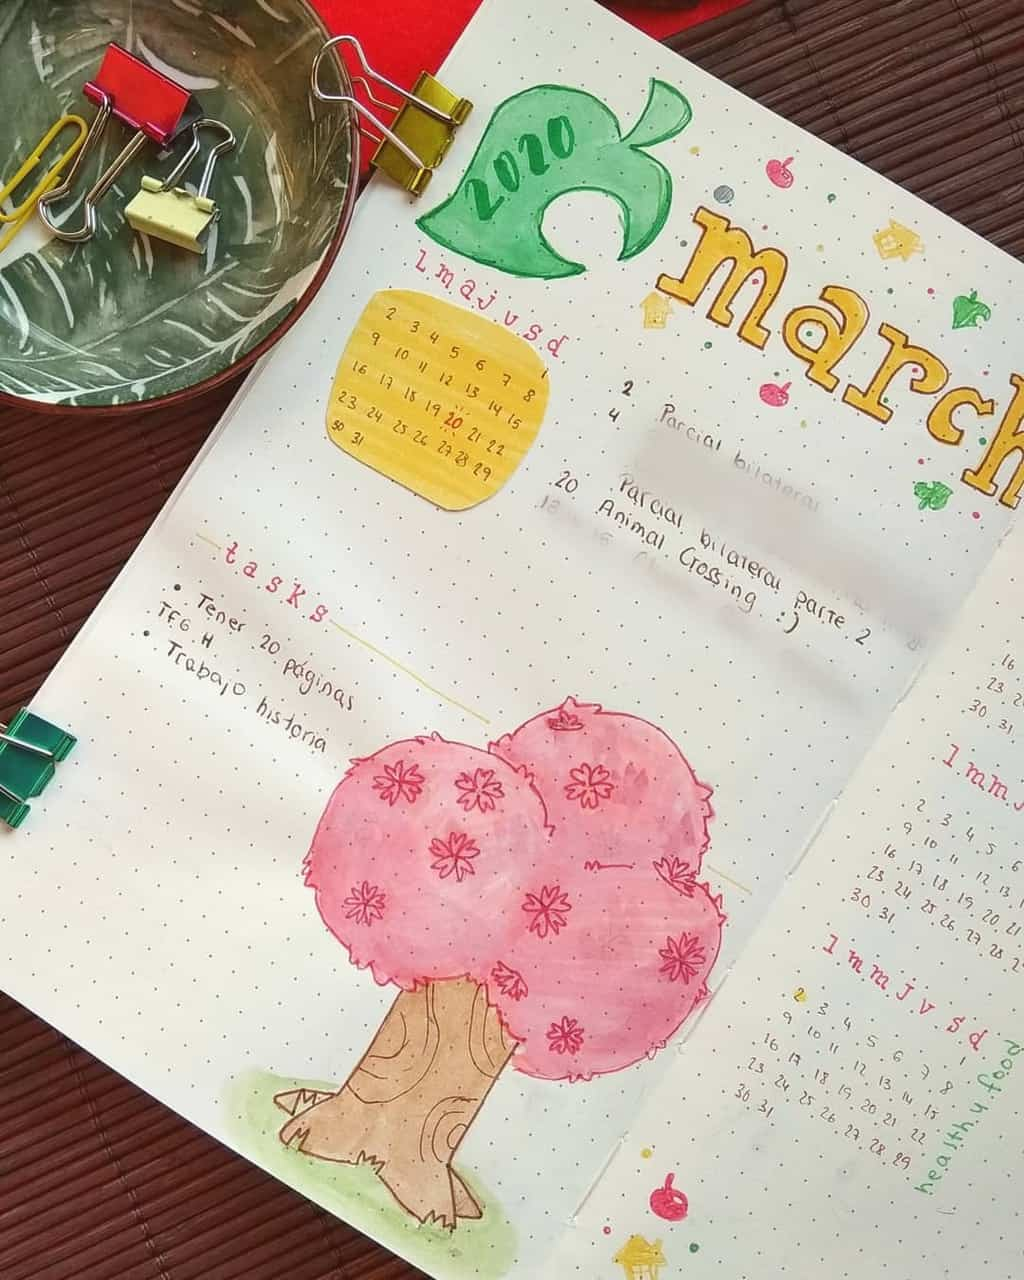 Animal Crossing Bullet Journal Inspirations - monthly log by @_messydesk | Masha Plans